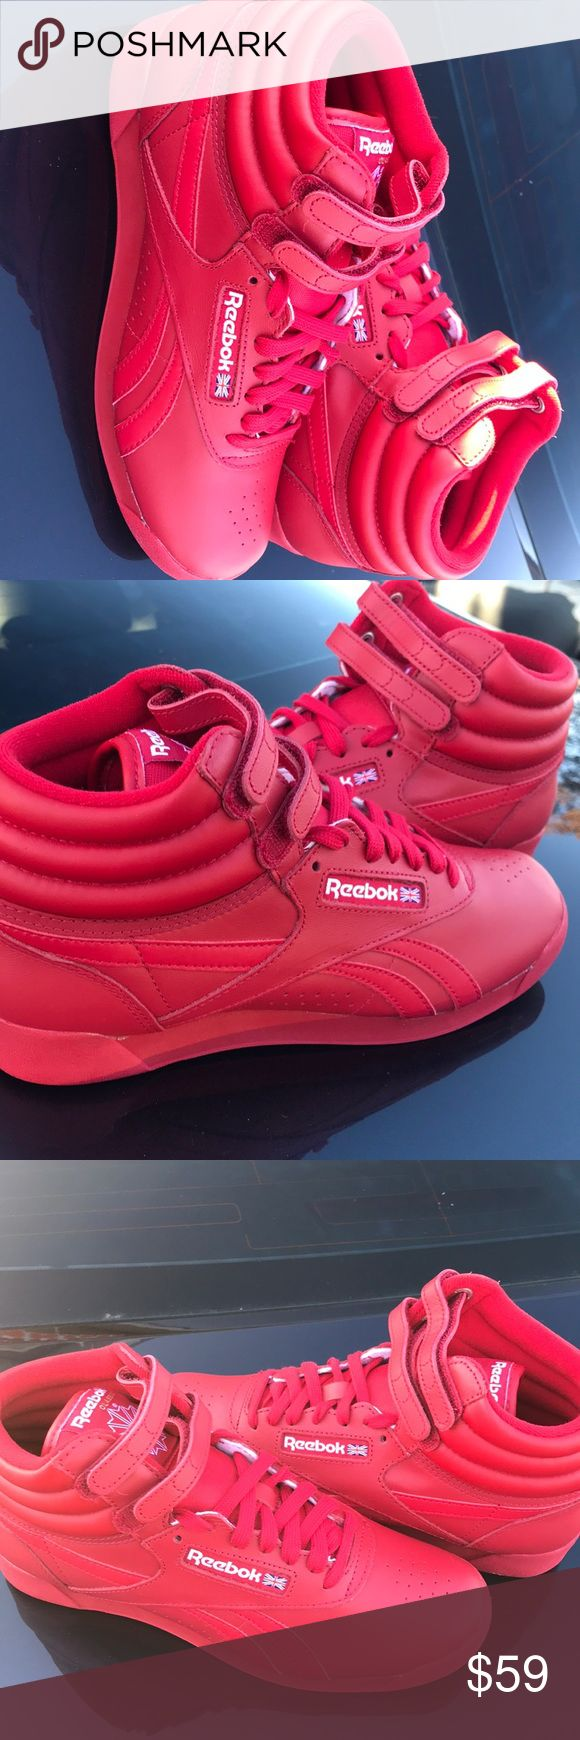 New Reebok Classic Red Womens HOT sneakers New pair of Womens Reebok Red in size 7.5, 7, 6.5, & 5 available. never worn. You have to add these sexy sneakers to your collection. Reebok Shoes Sneakers